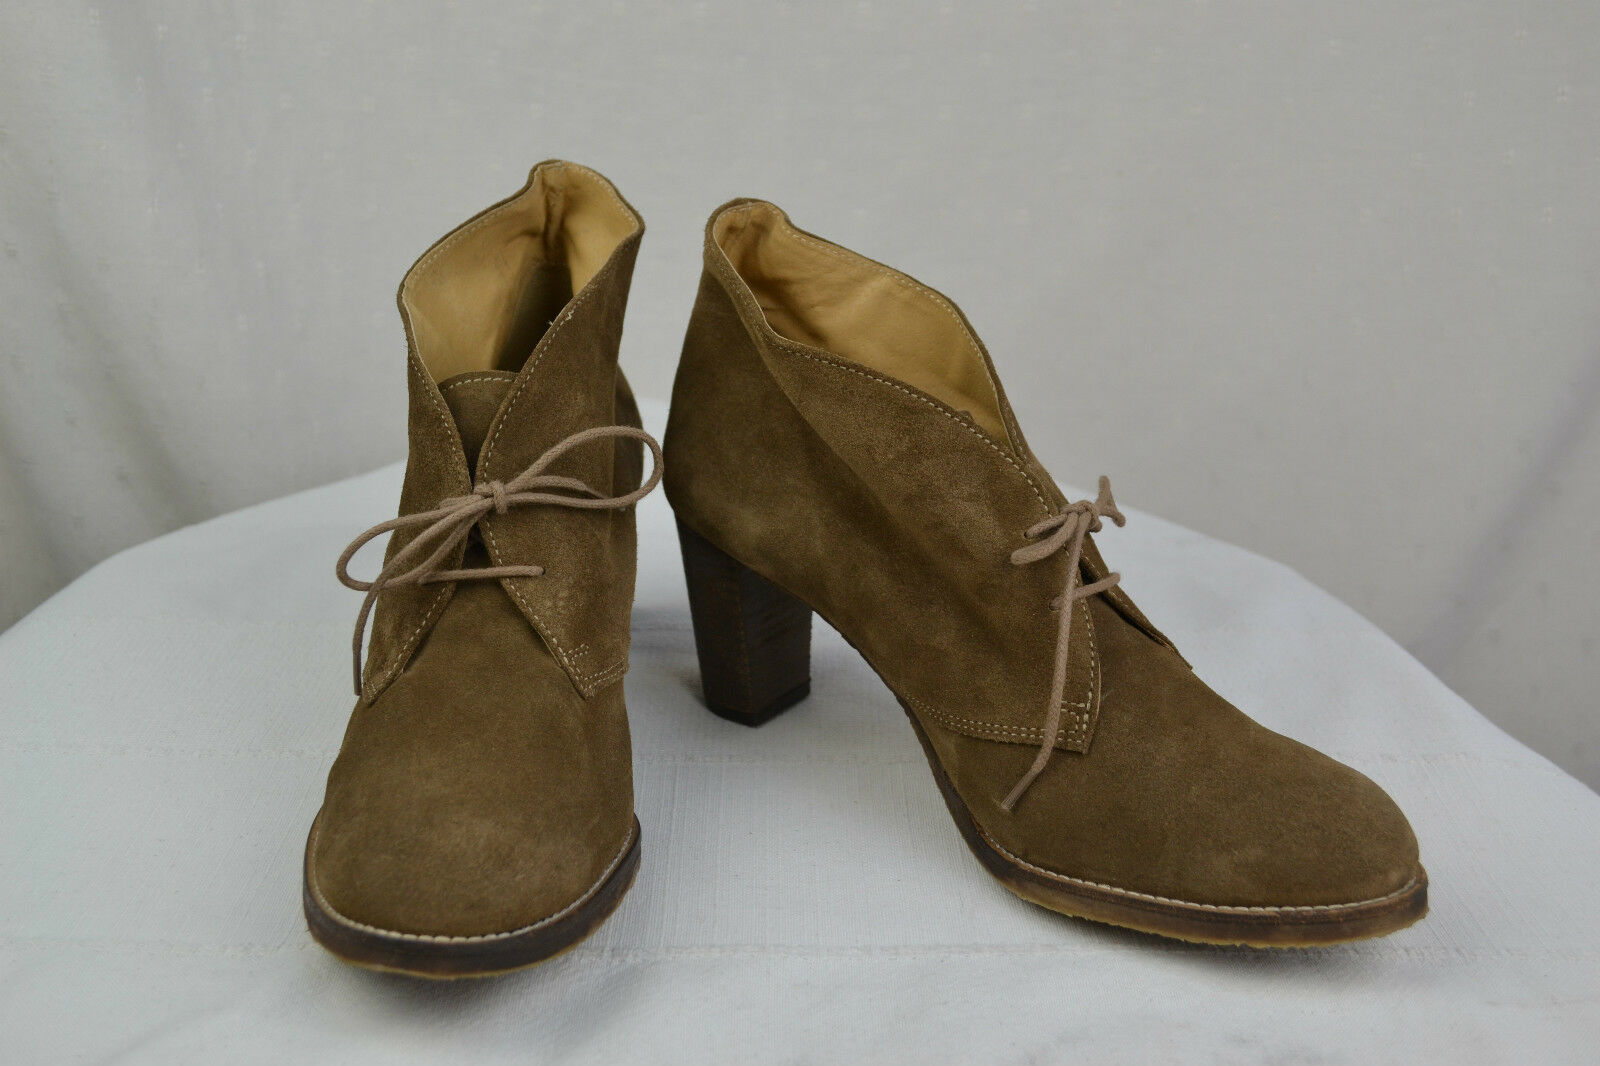 Boots Low Boots RUDY'S Suede Brown T 41,5 Top Condition